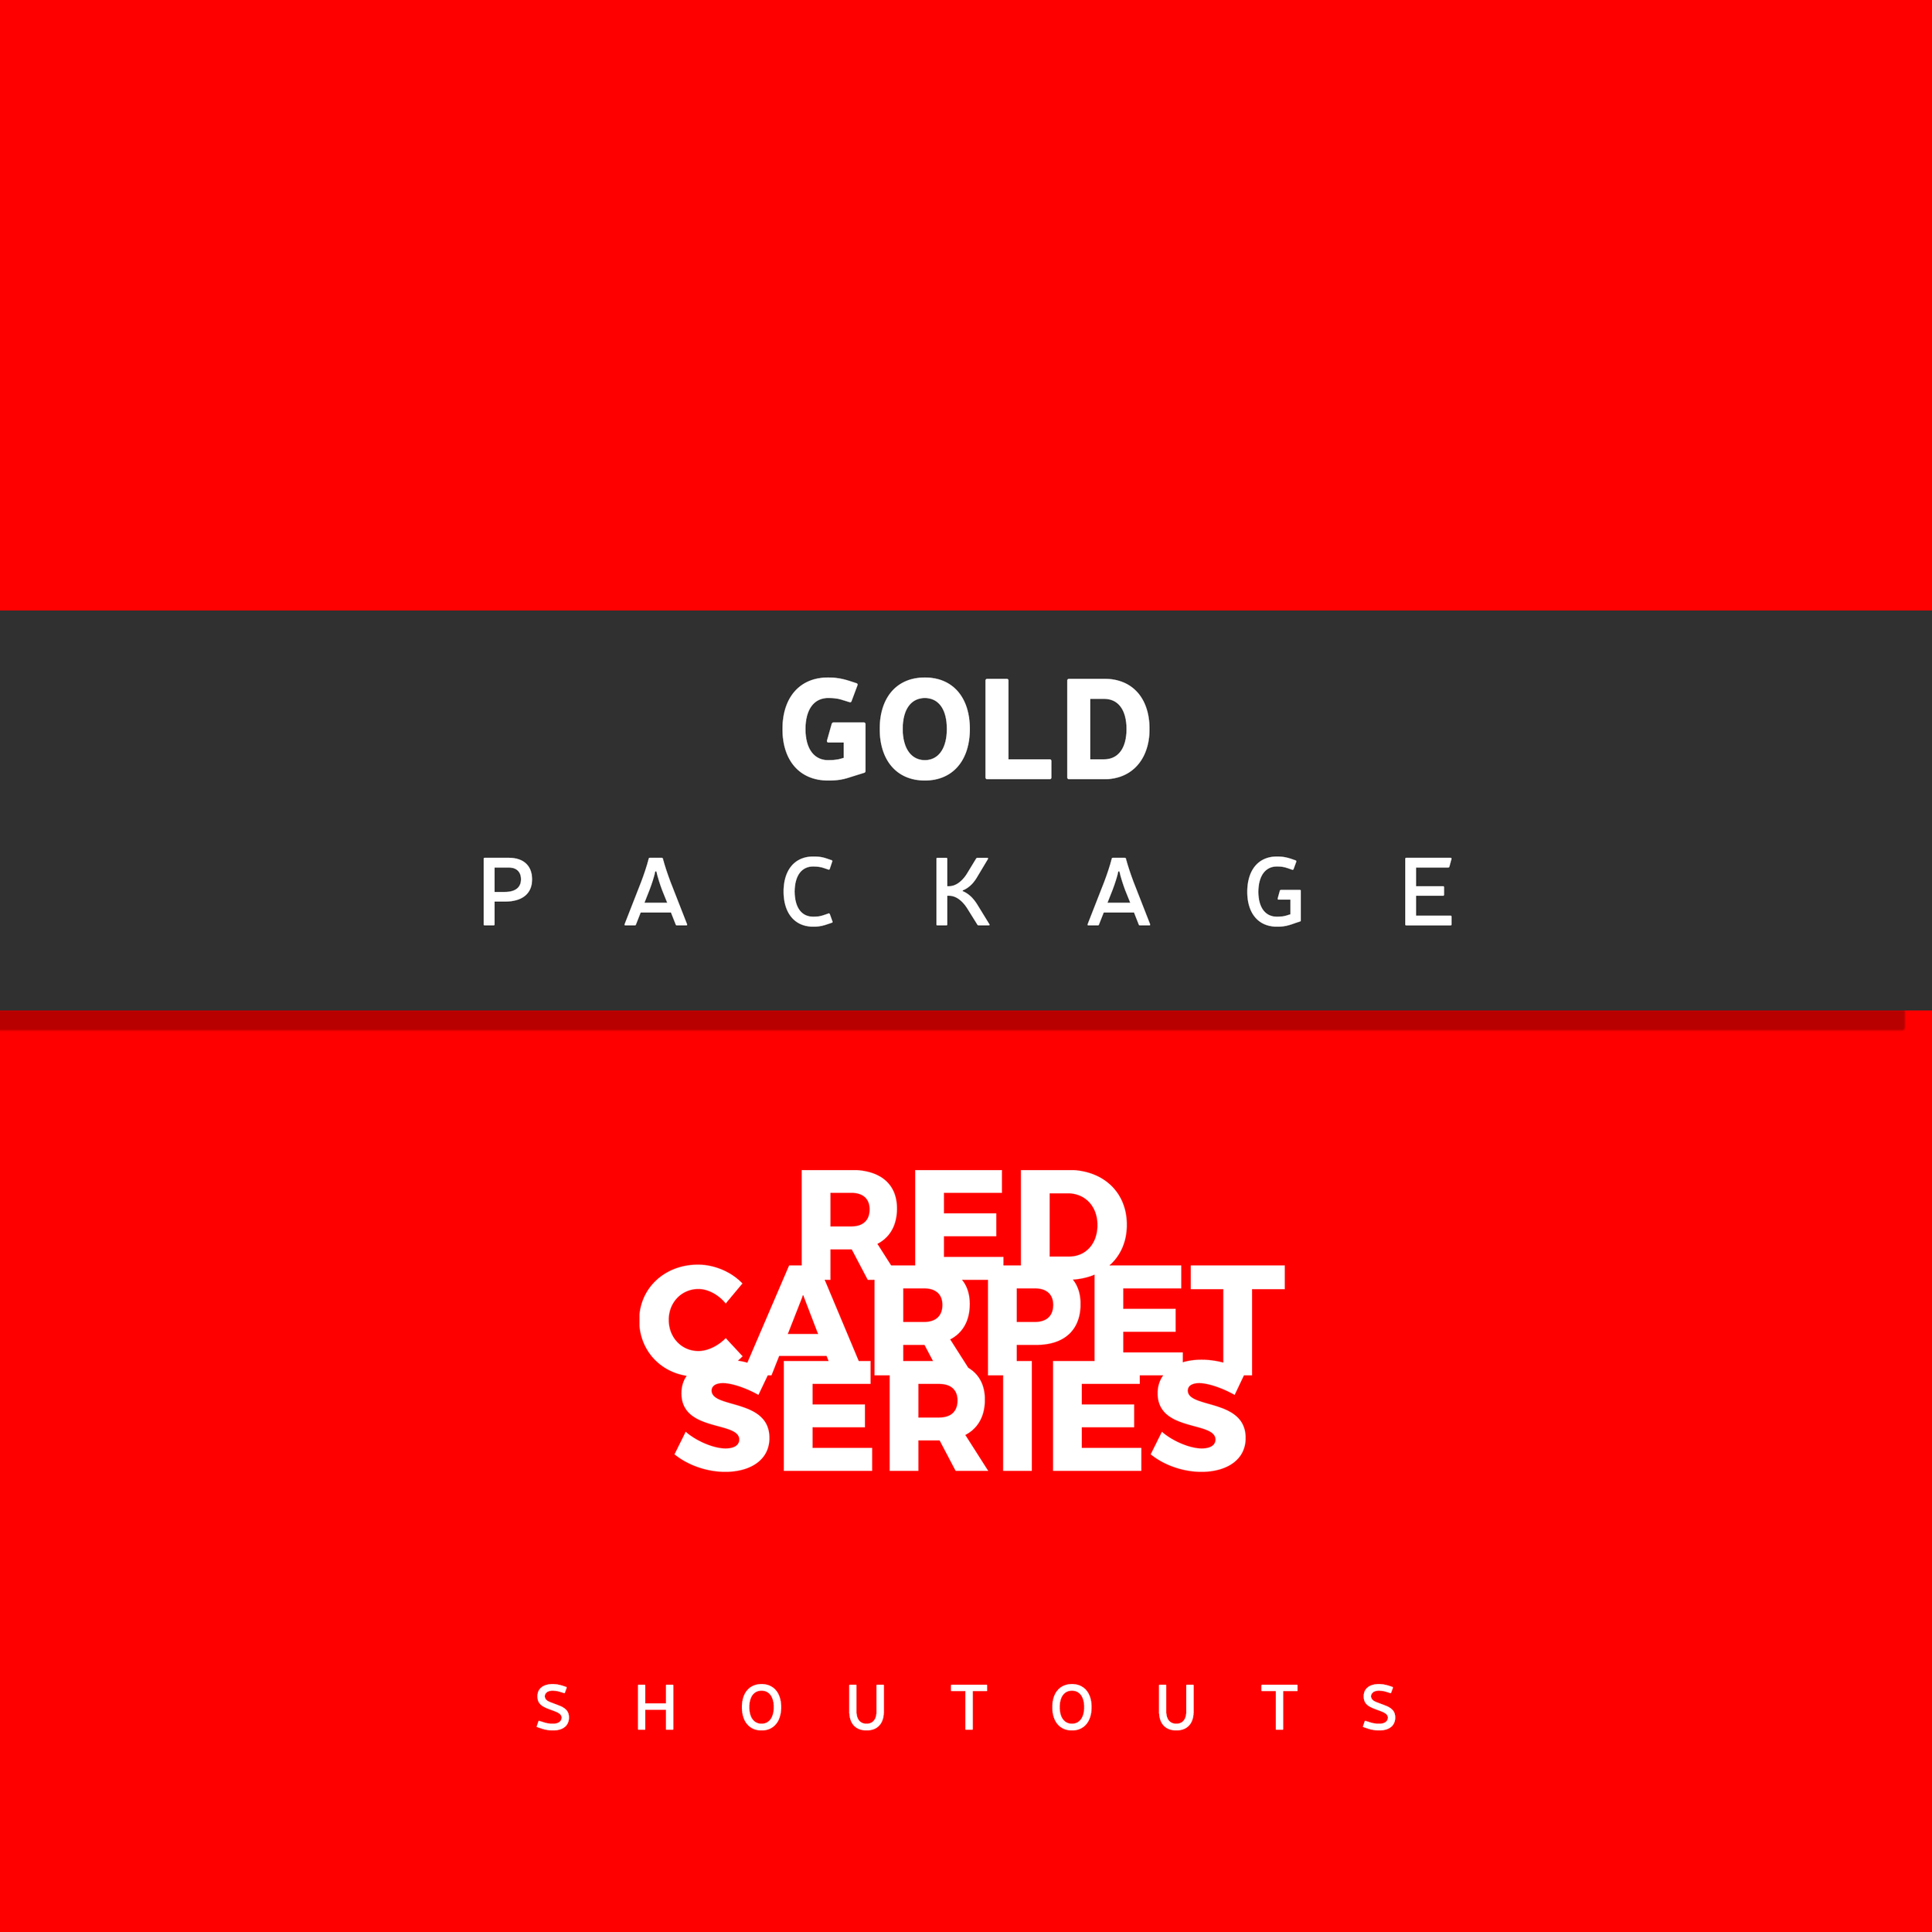 Red-Carpet-Series---GOLD-PACKAGE.png